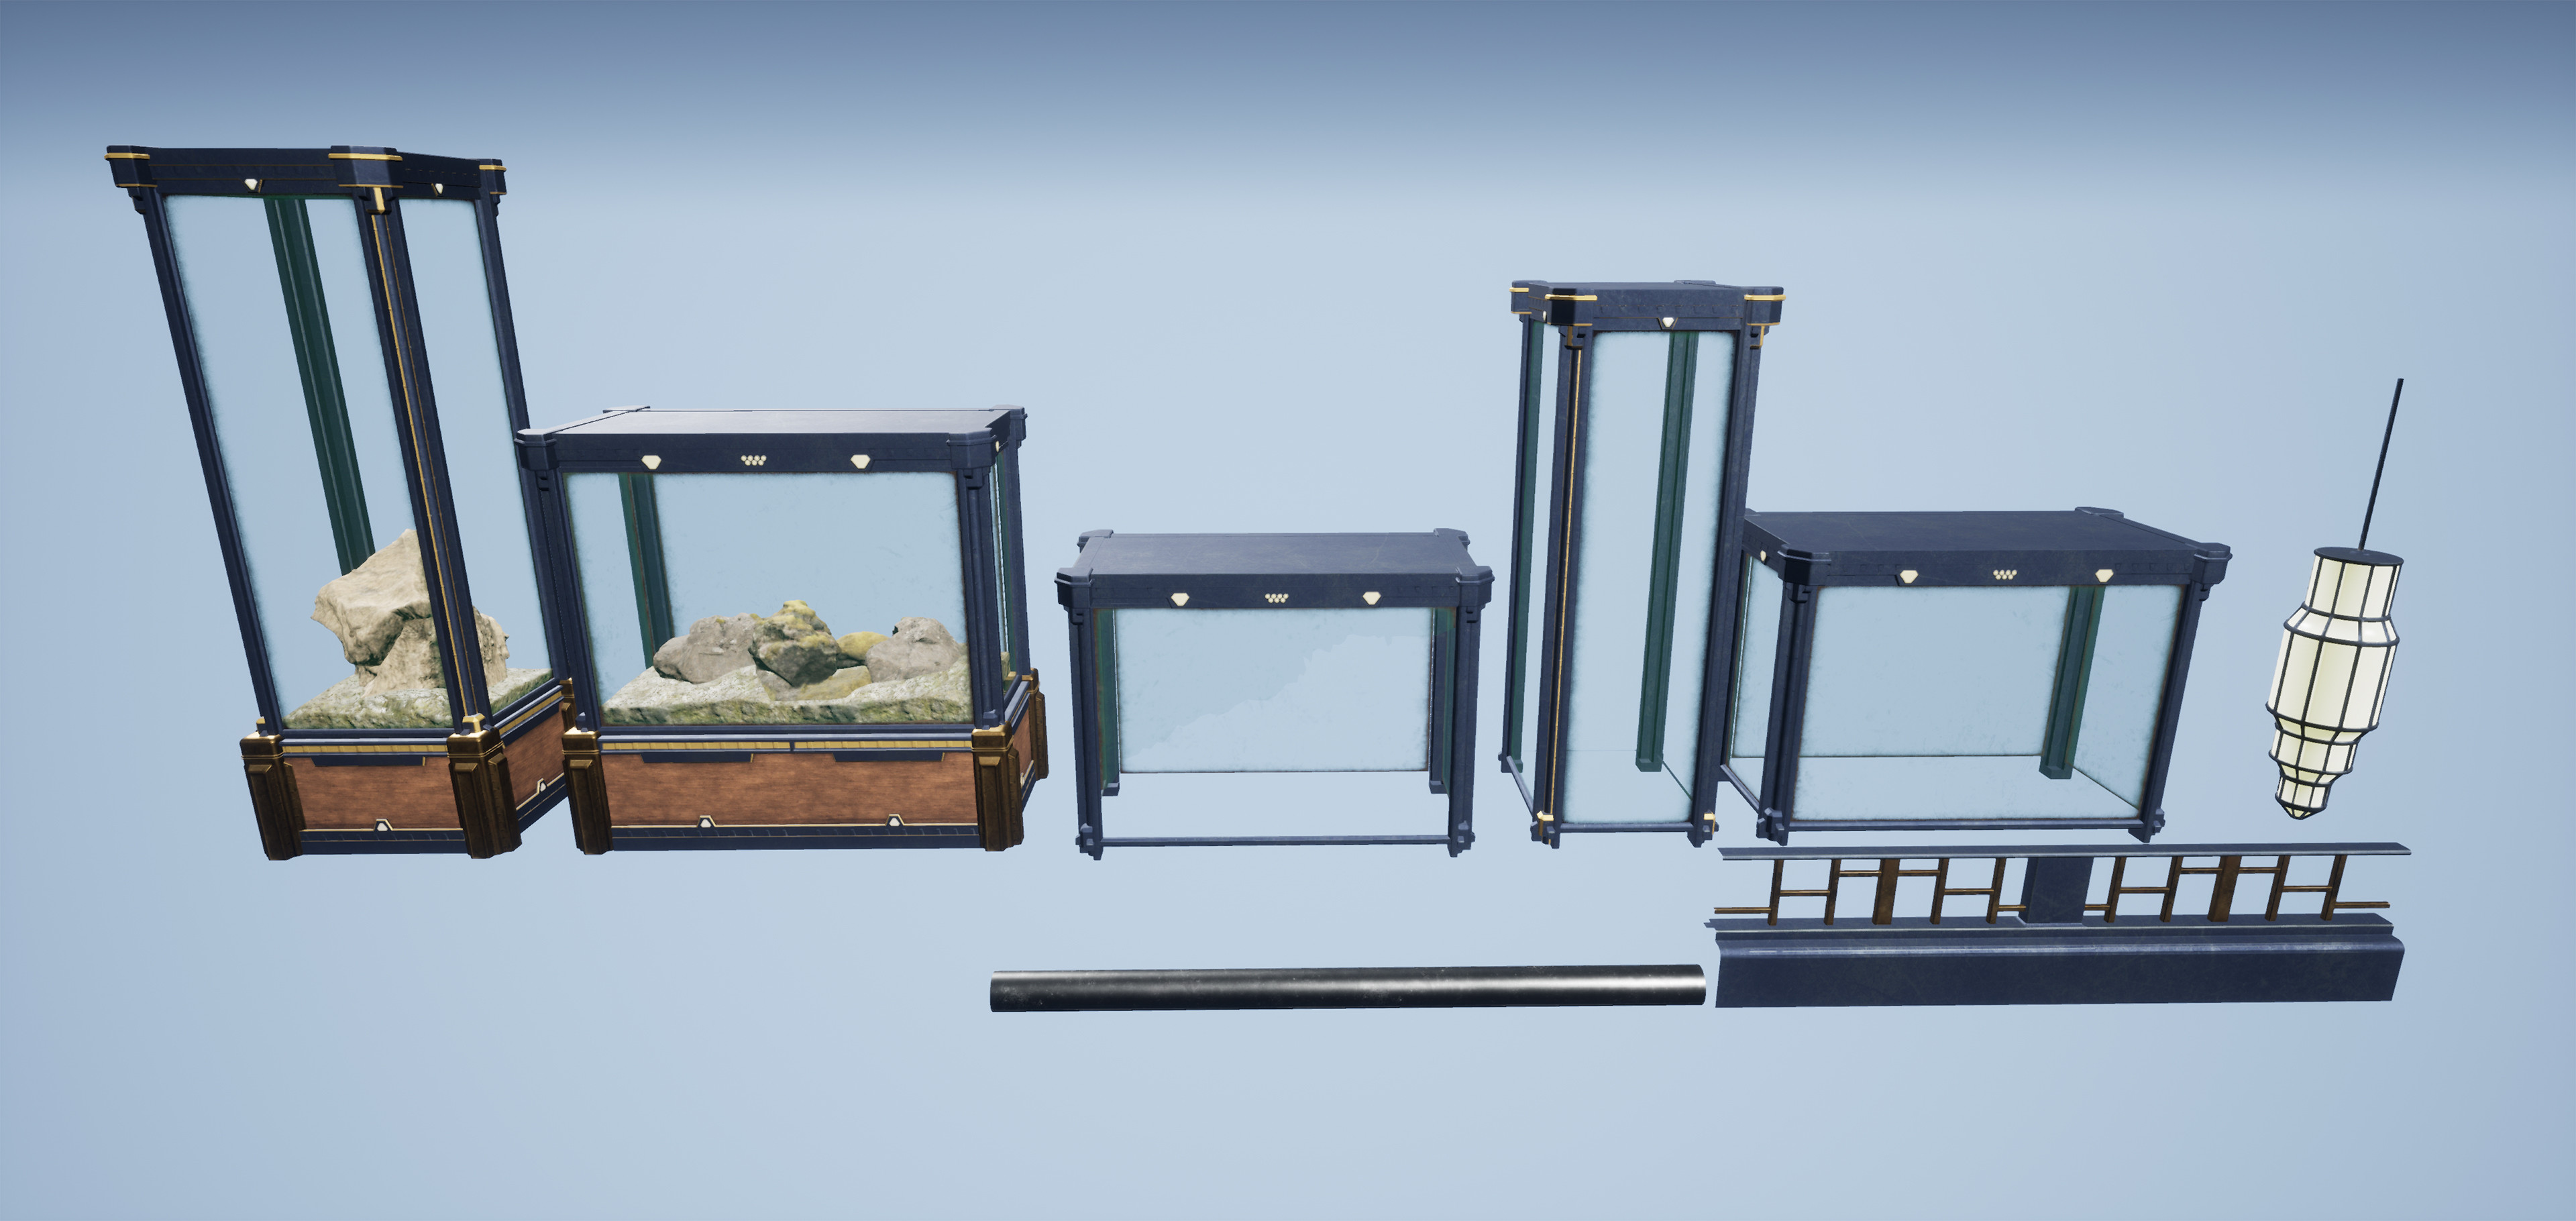 A few other modular assets utilized in the scene.